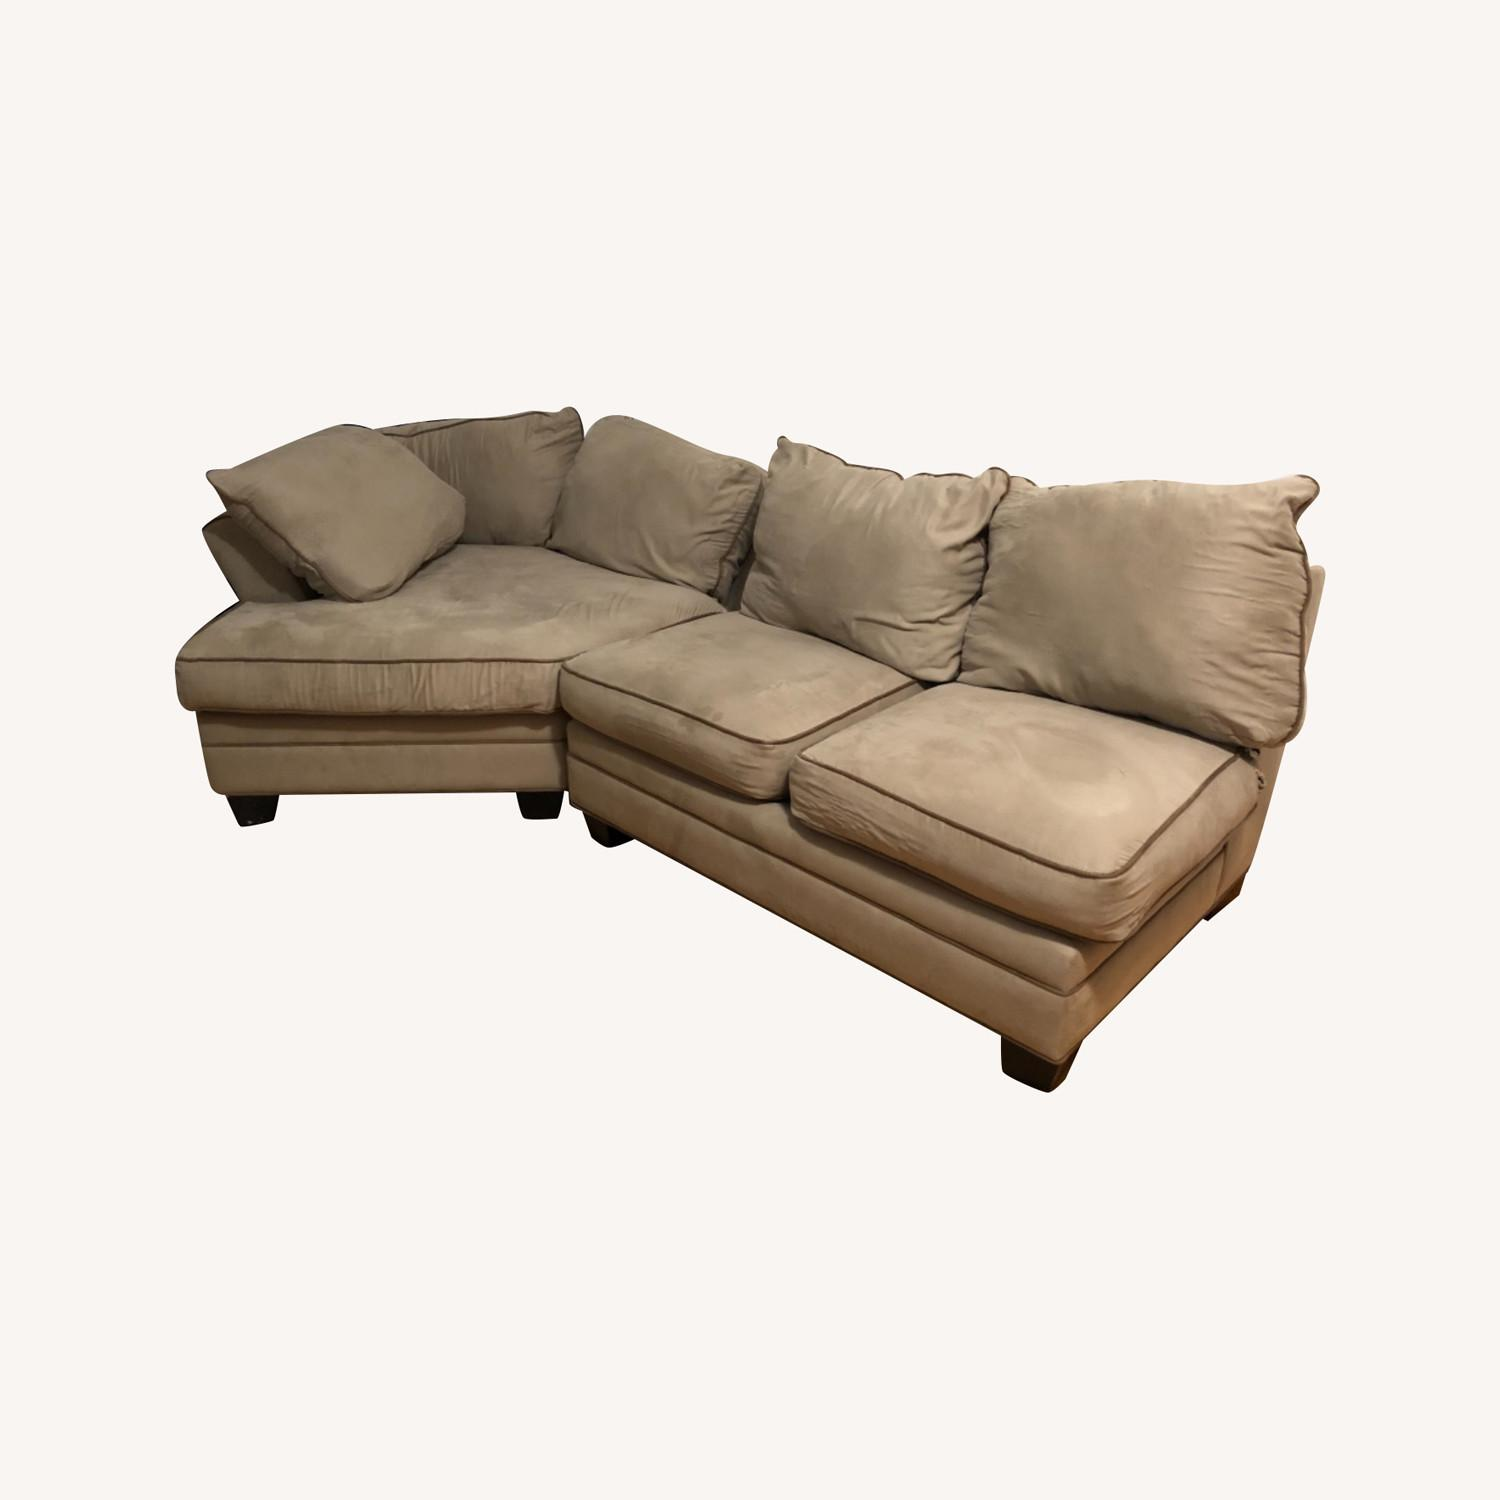 Raymour & Flanigan Foresthill 2 Piece Sectional Sofa - image-0